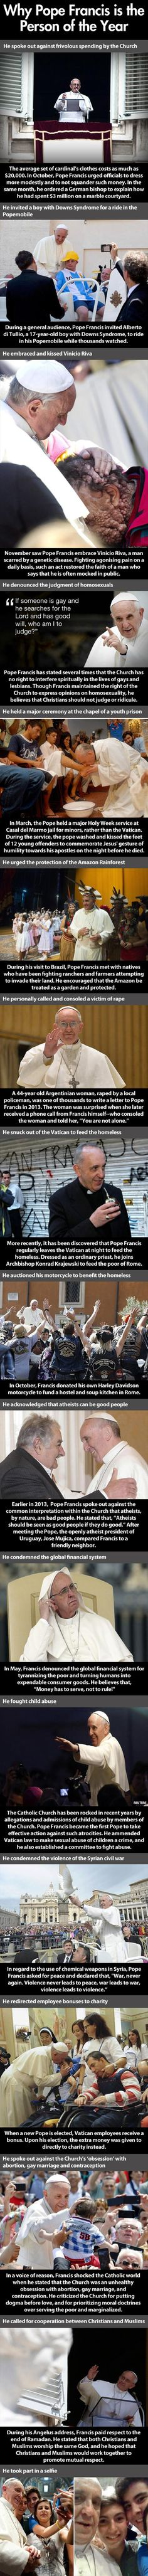 I'm not a Catholic, but I think Pope Francis is wonderful! Faith In Humanity Restored – 25 Pics